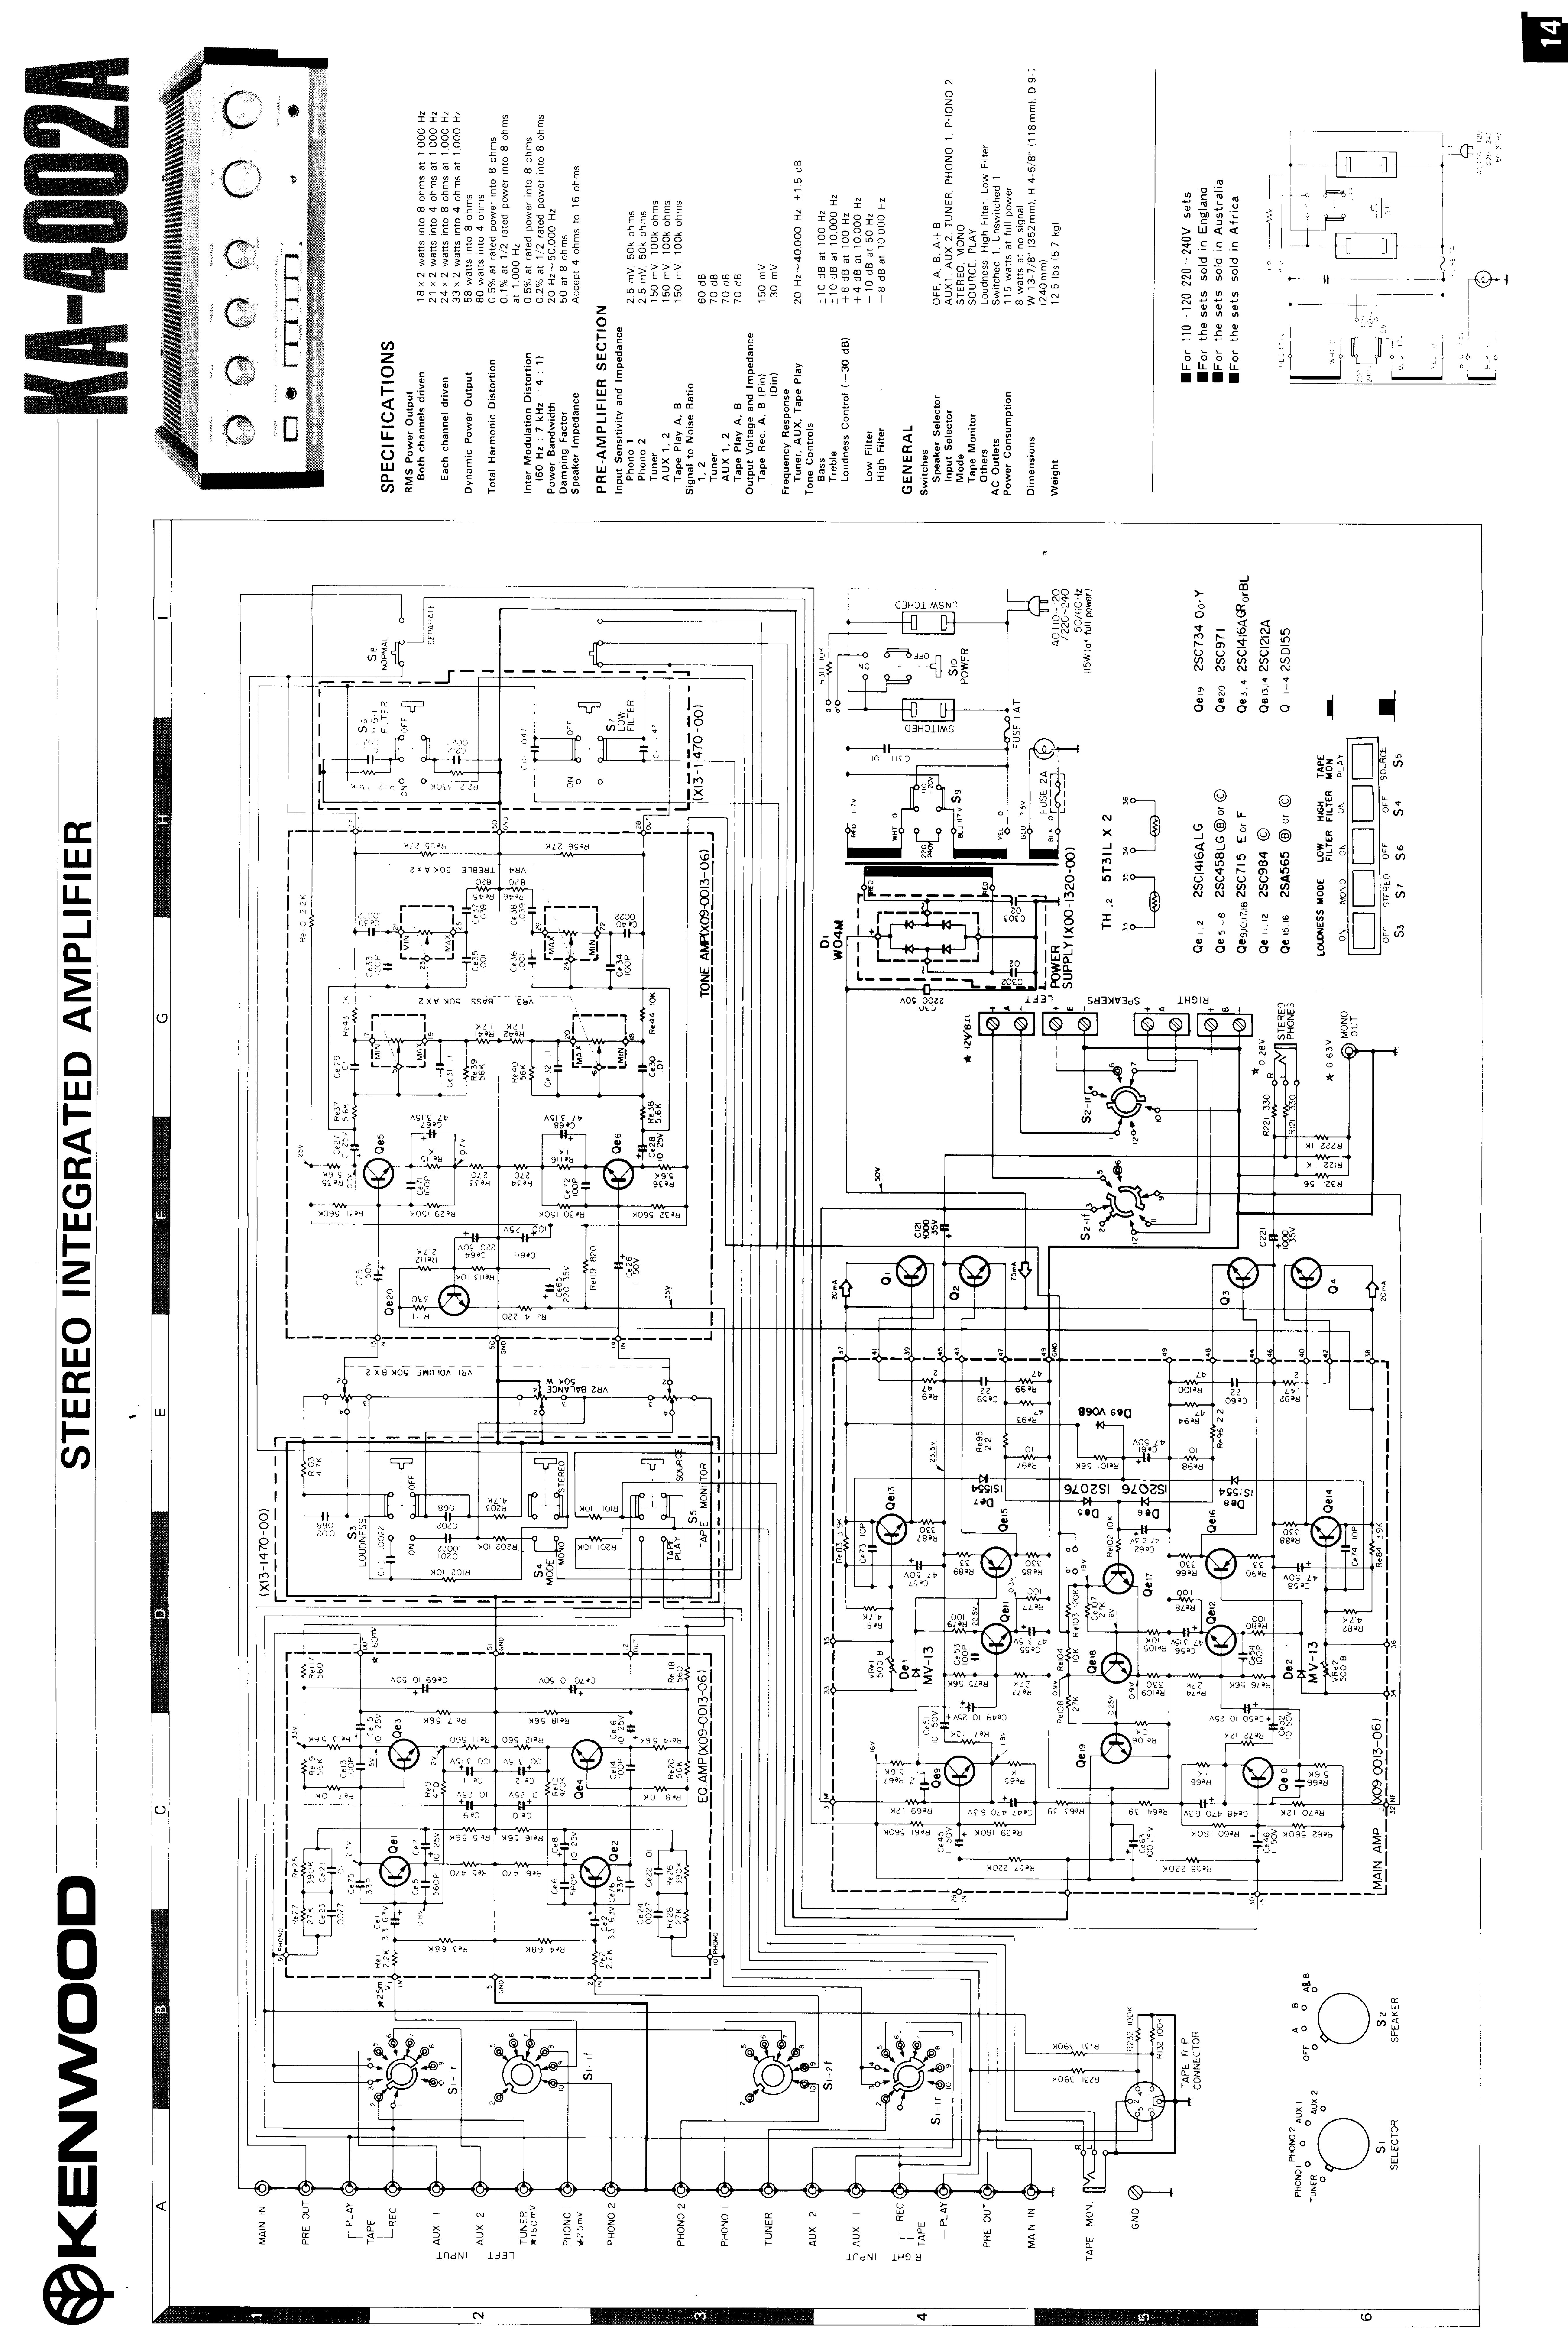 Kenwood Wiring Diagram Free Download Schematic Electrical Car Radio Get Image About Ka 300 Sch Service Manual Schematics Eeprom Colors